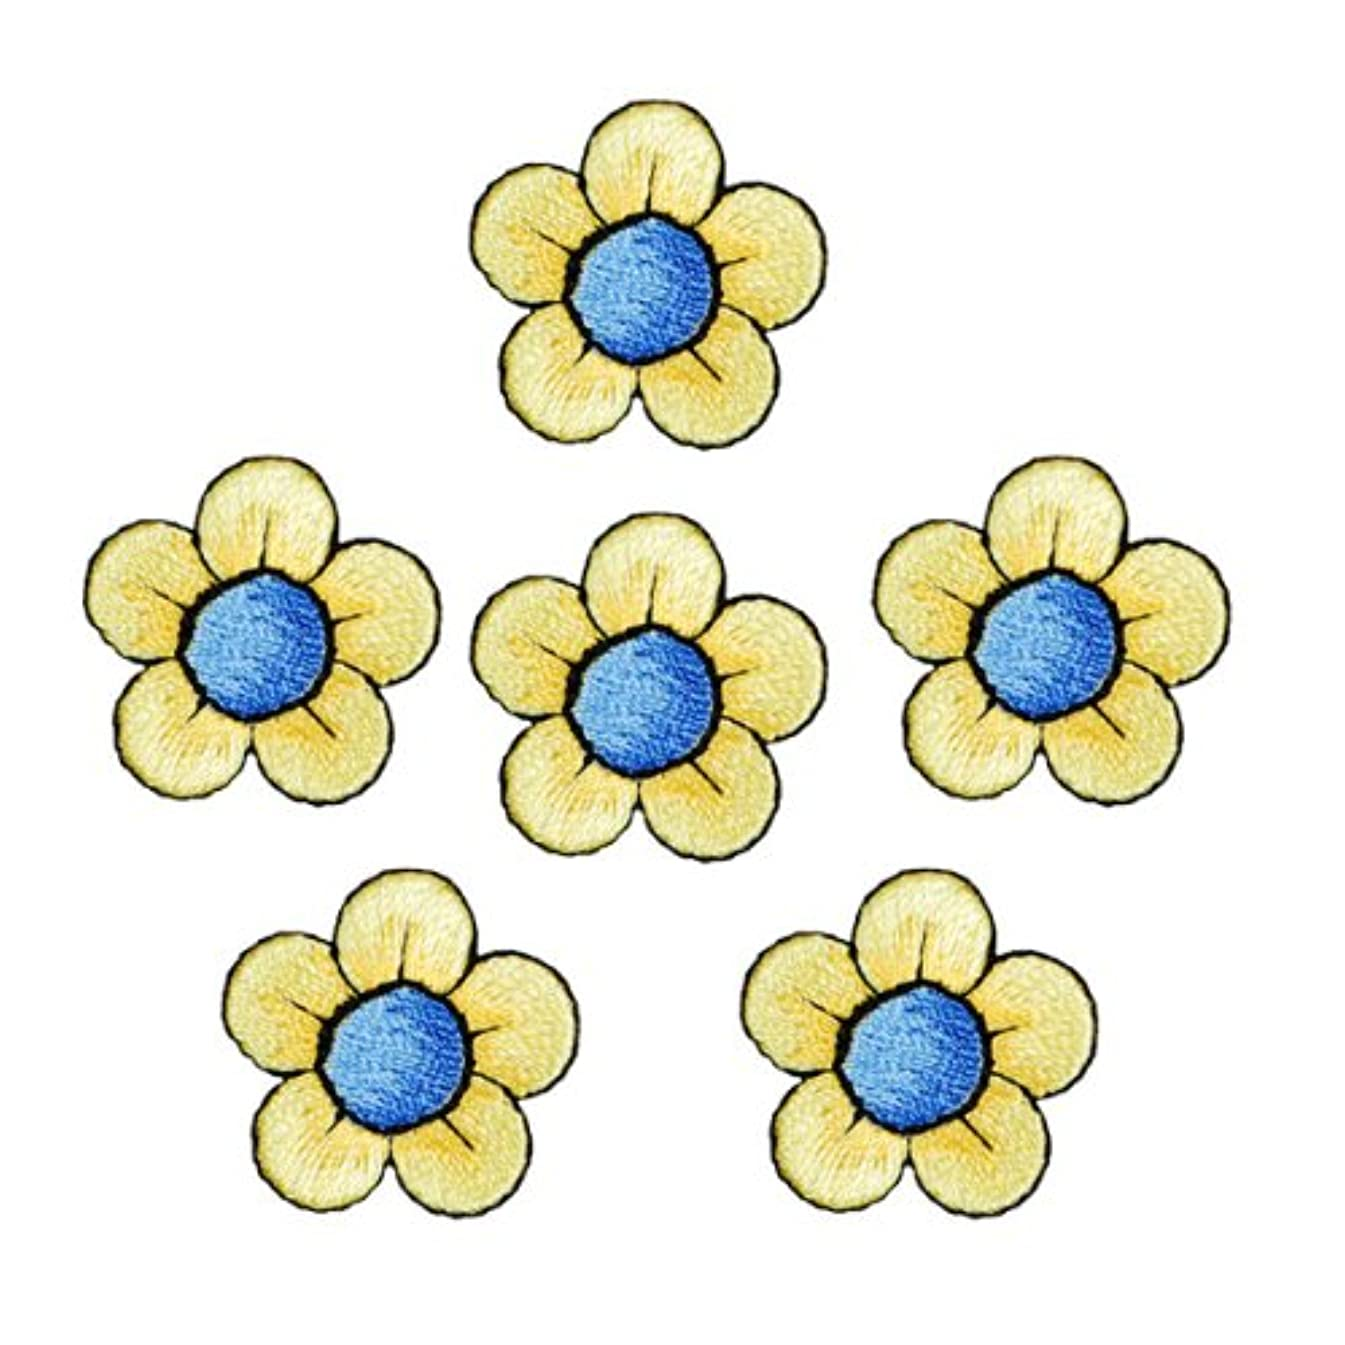 Expo Iron-on Embroidered Applique Patches, BaZooples Flower, 6-Pack